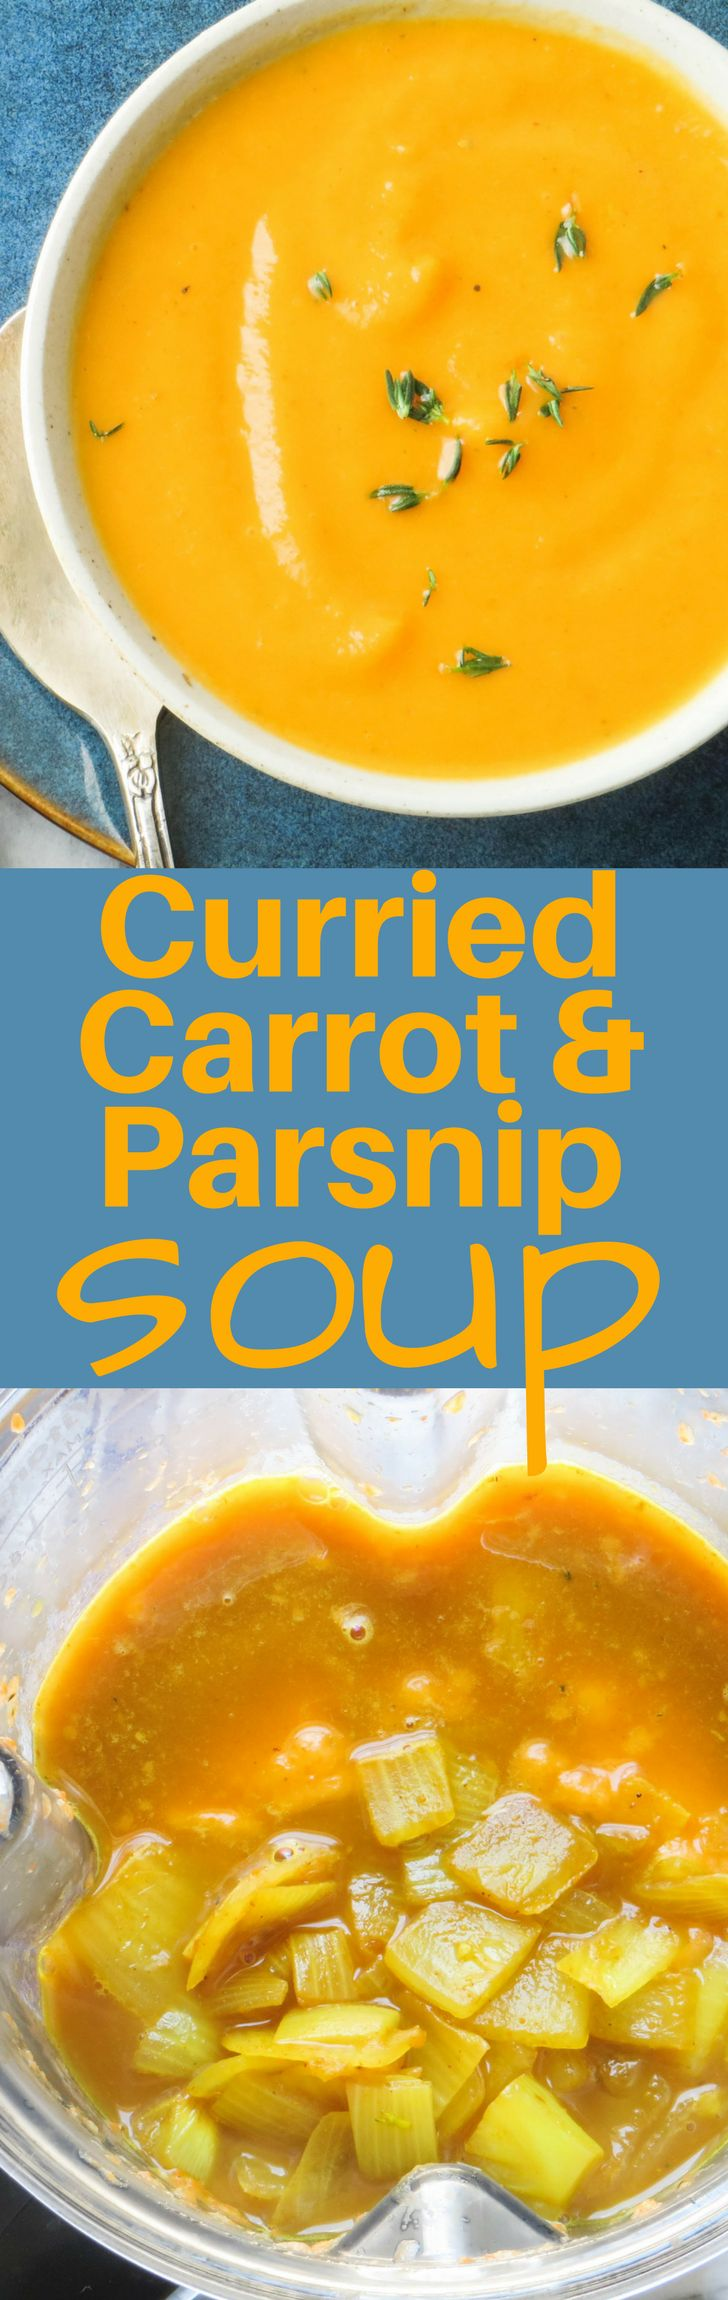 This easy vegetarian soup is made with leftover vegetables, broth and spices and is ready in minutes. Curried Carrot and Parsnip Soup is a great light lunch or starter. #soup #vegetariansoup #carrotsoup #parsnips #carrots #curry #vitamix #blendersoups #fastmeals #healthymeals #vegansoup #creamysoups #healthycreamysoup